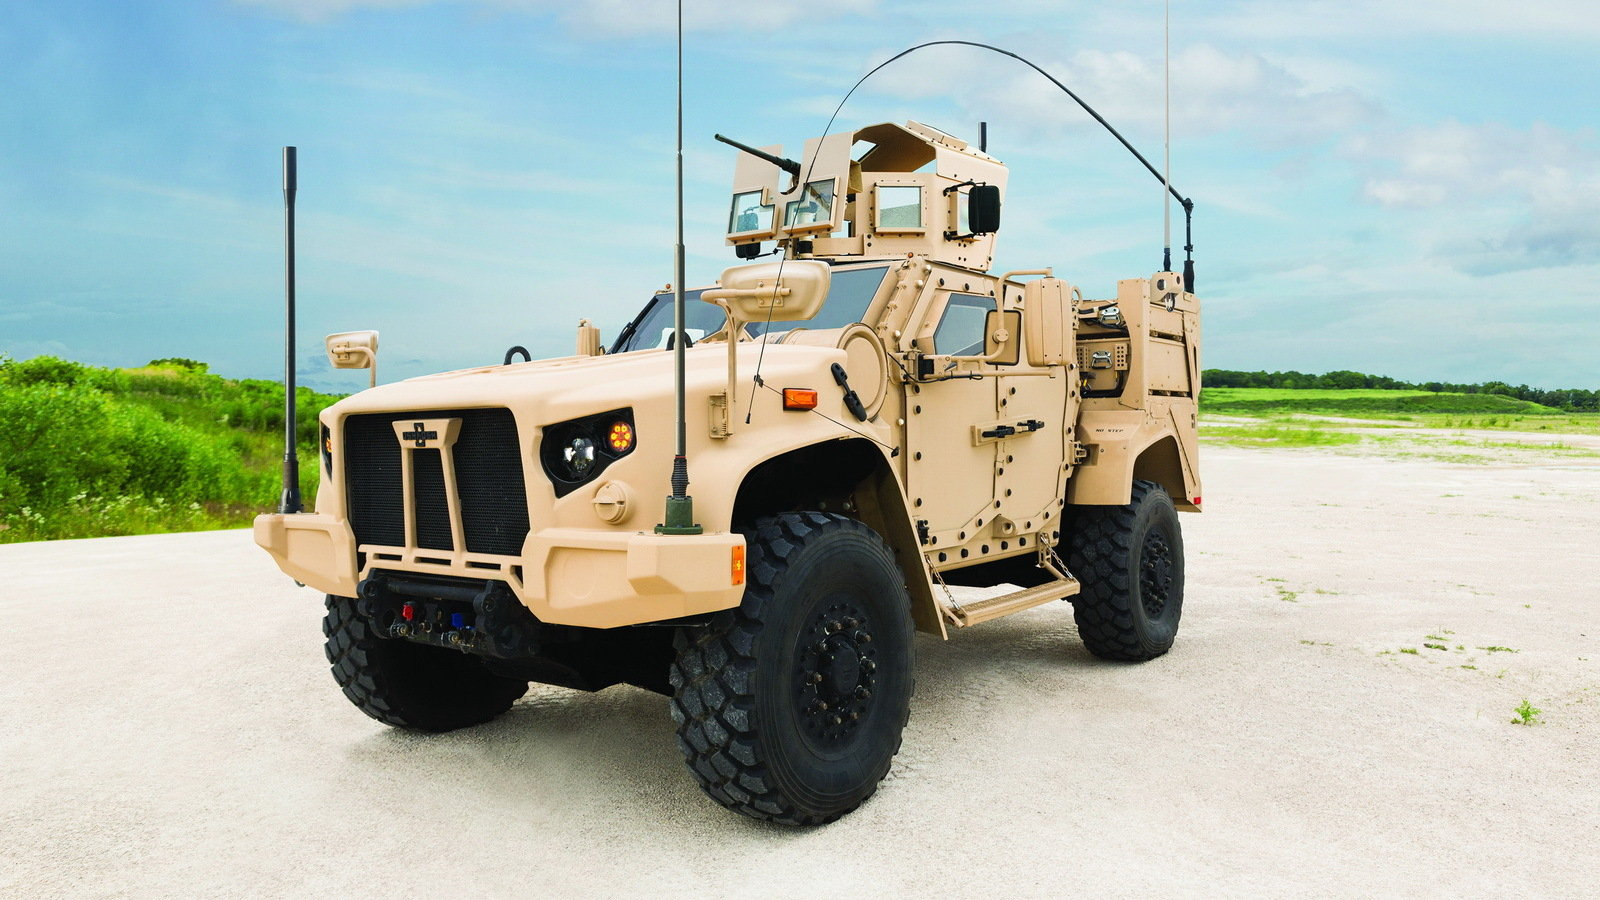 2017 oshkosh joint light tactical vehicle picture 643211 truck review top speed. Black Bedroom Furniture Sets. Home Design Ideas